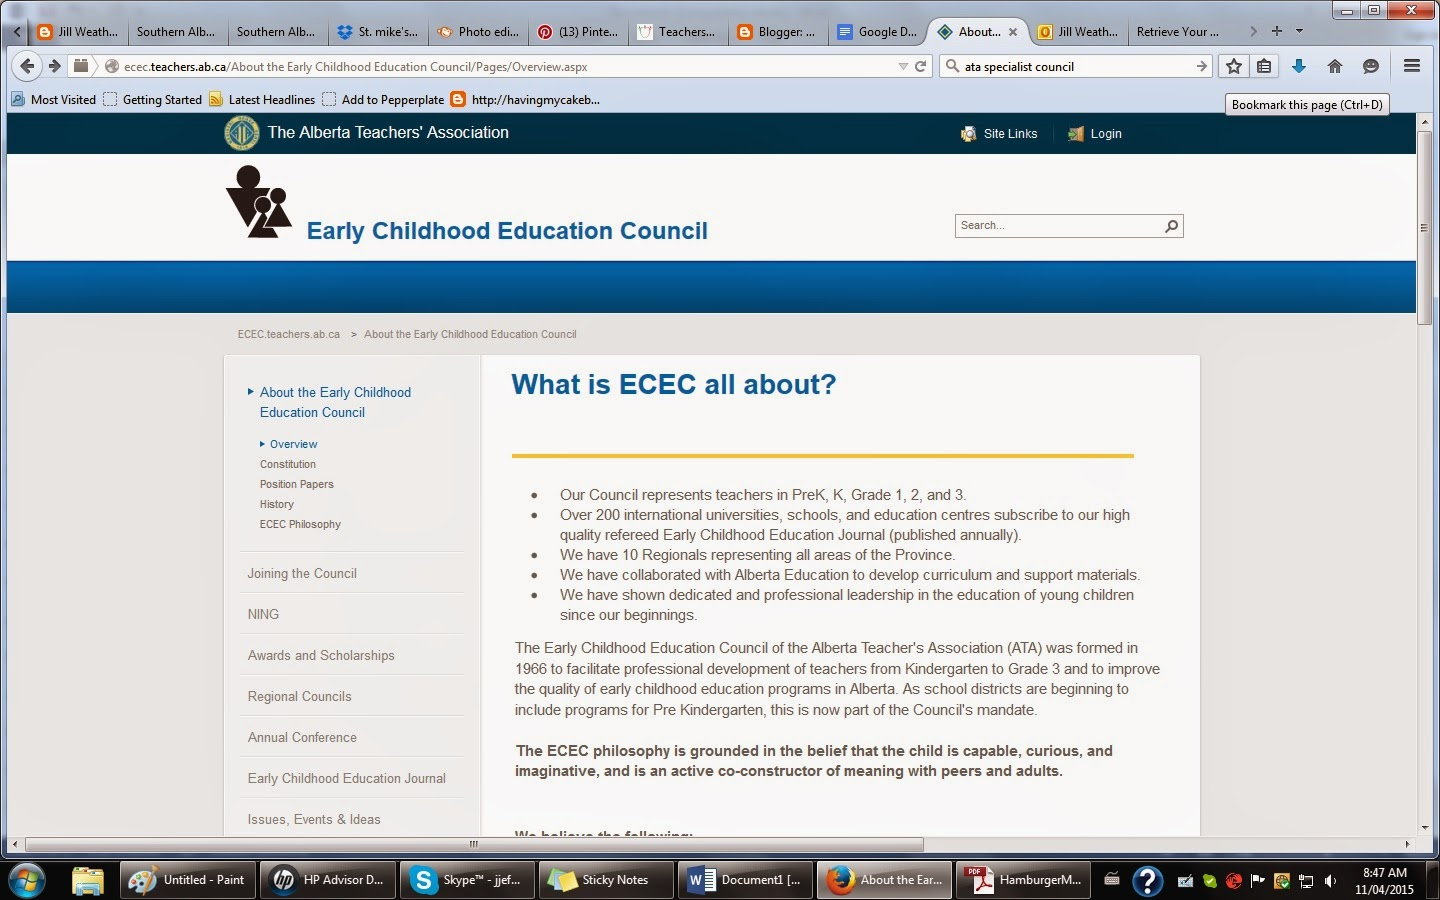 http://ecec.teachers.ab.ca/About%20the%20Early%20Childhood%20Education%20Council/Pages/Overview.aspx